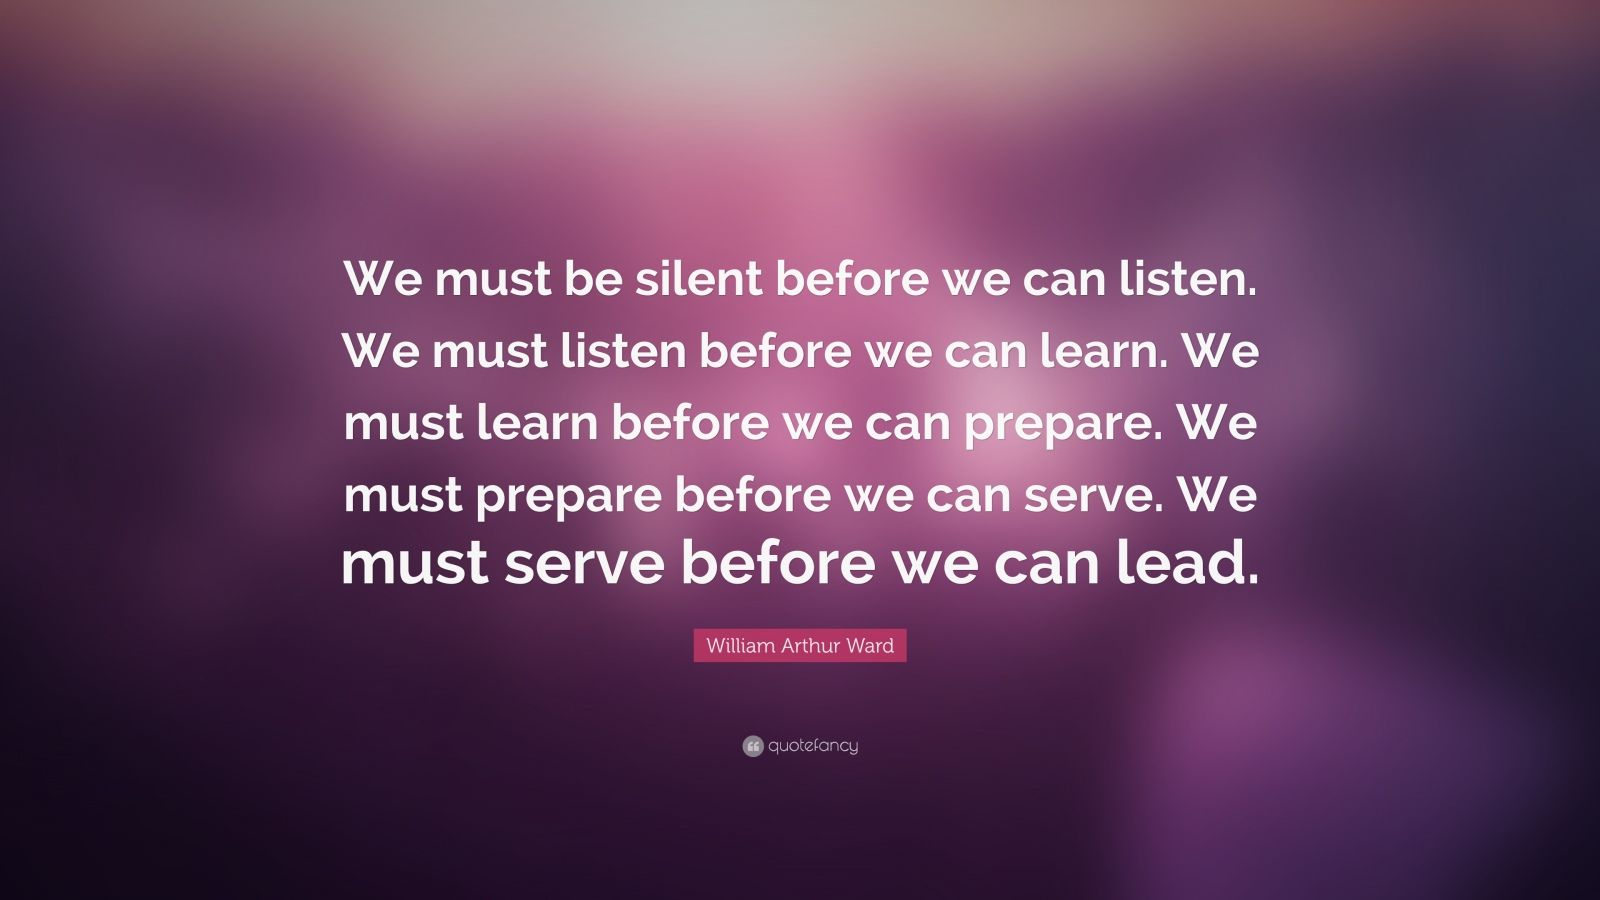 "William Arthur Ward Quote: ""We must be silent before we can listen. We must listen before we can learn. We must learn before we can prepare. We must prepare before we can serve. We must serve before we can lead."""